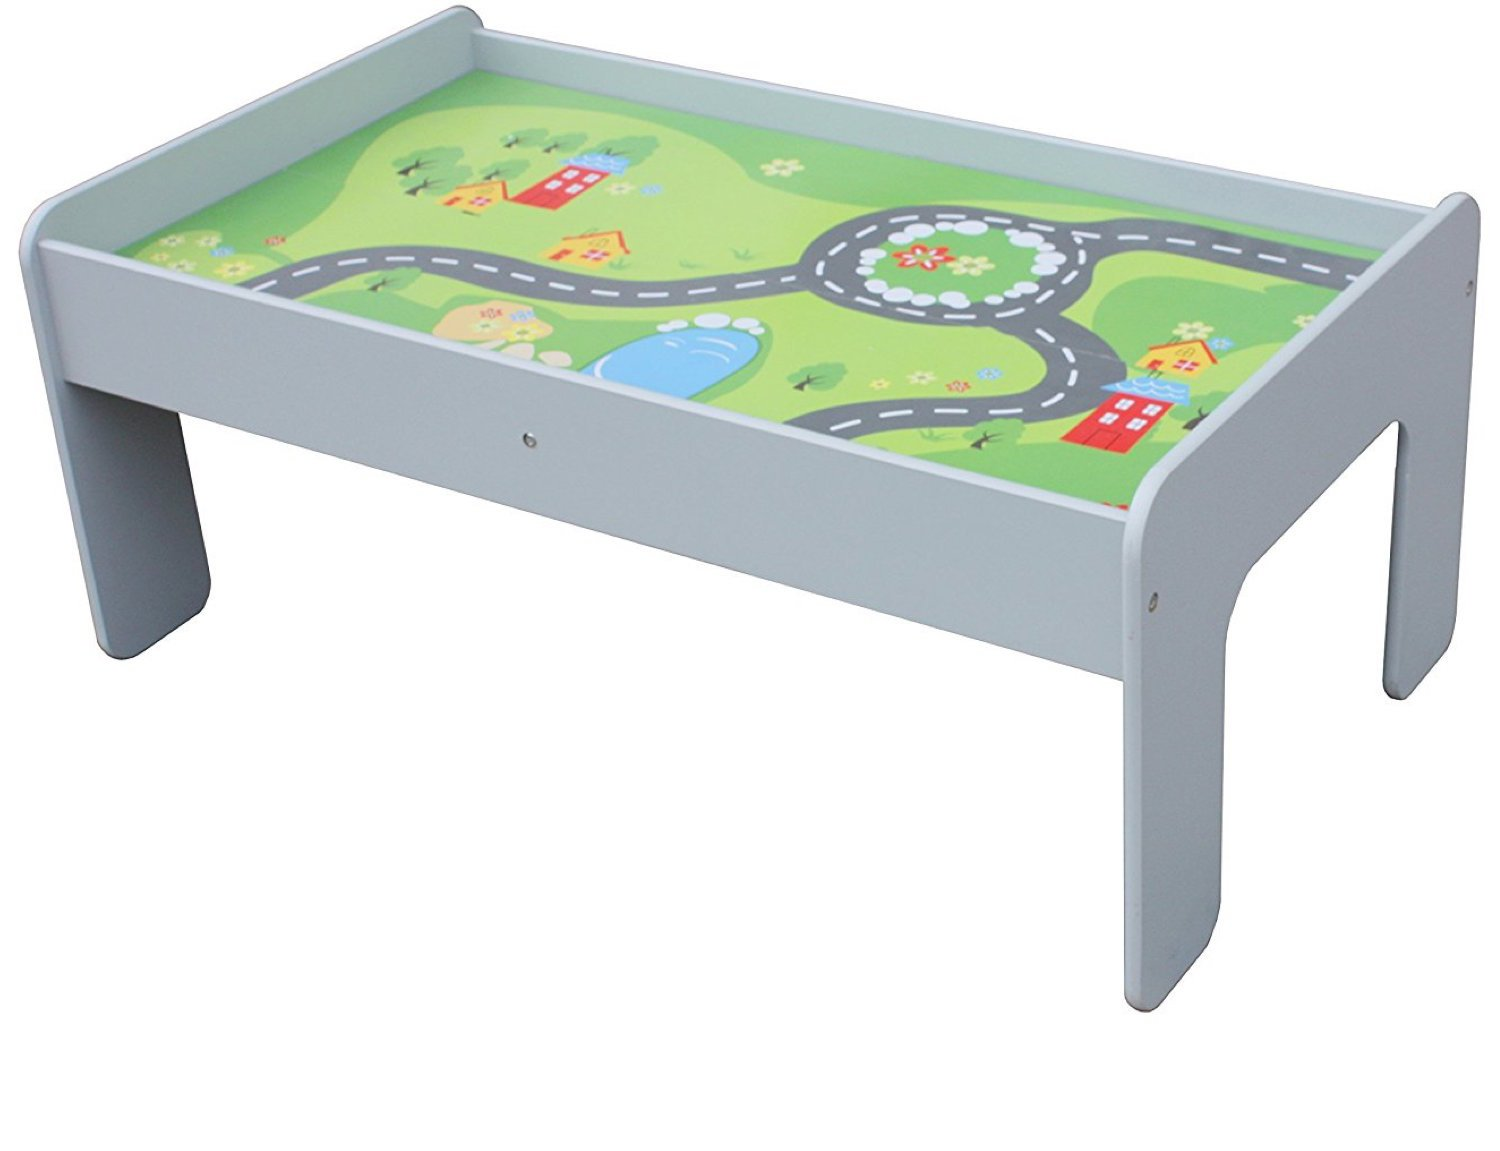 Pidoko Kids Train Table, Grey - Perfect Toy Gift Set For Boys & Girls (Gray) - Activity Table that is compatible with all major brand train tracks